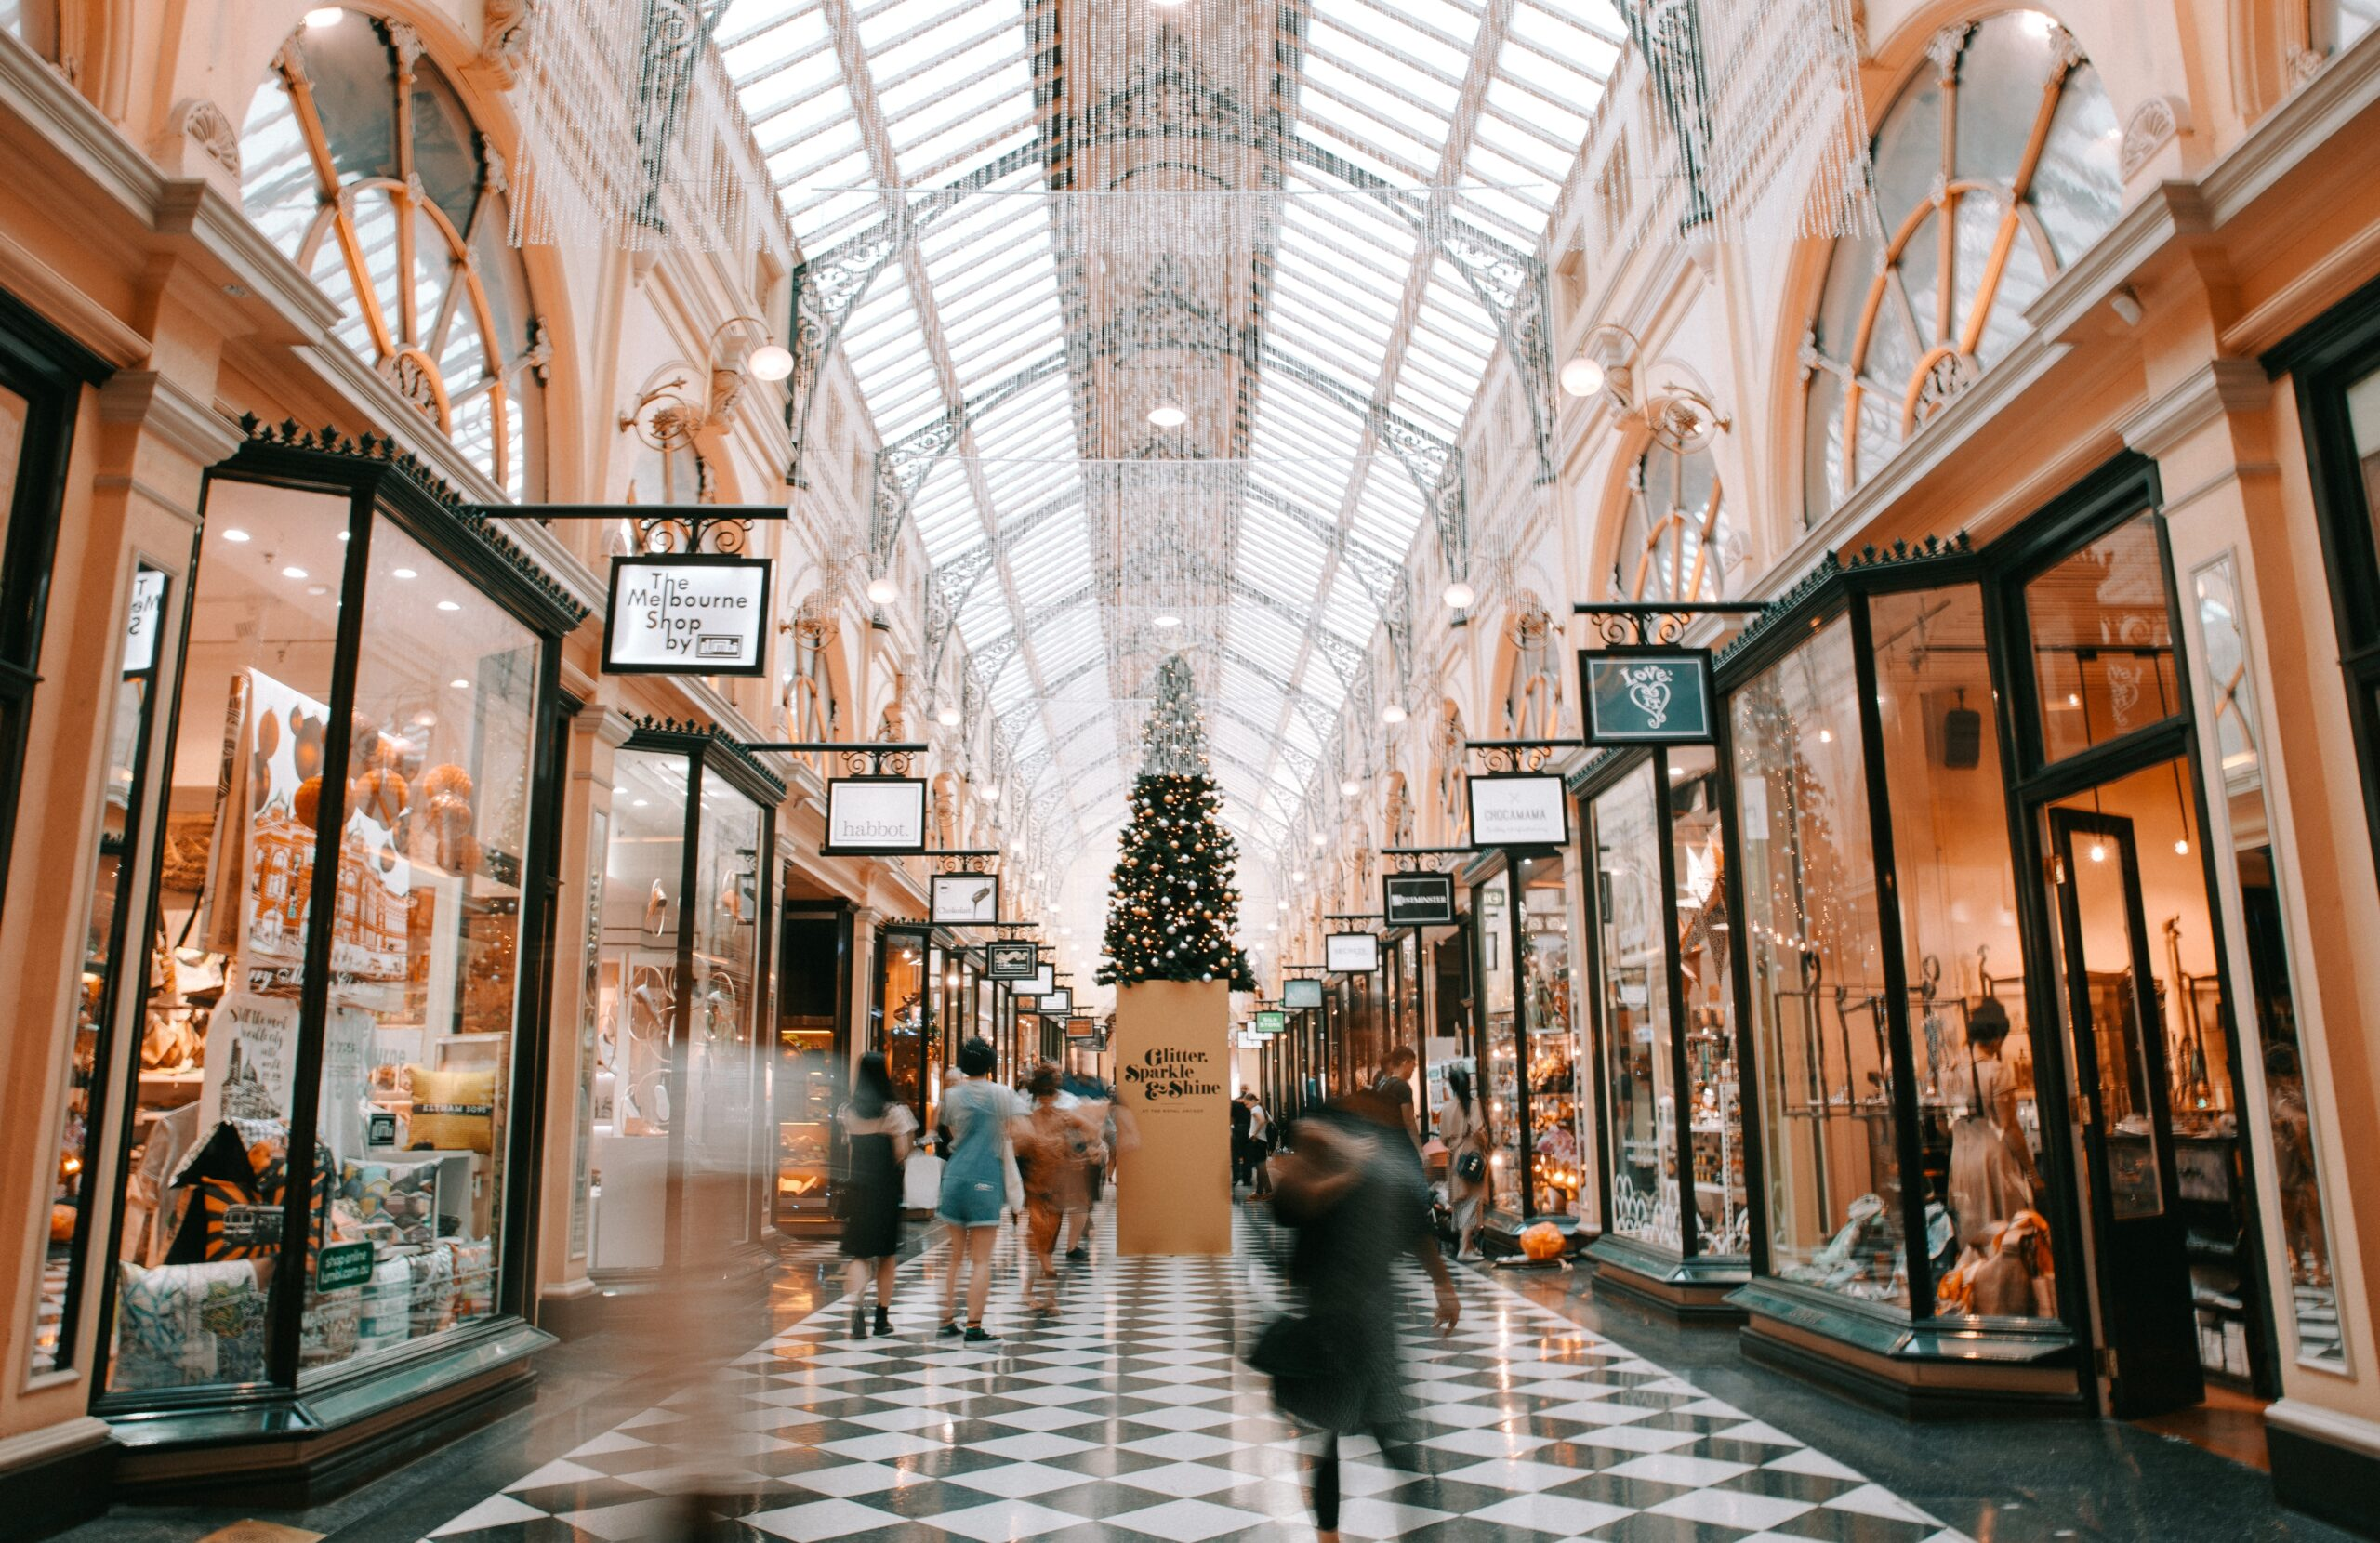 Post-COVID-19, Reimagining Retail Part 4: Supply Chain Resiliency